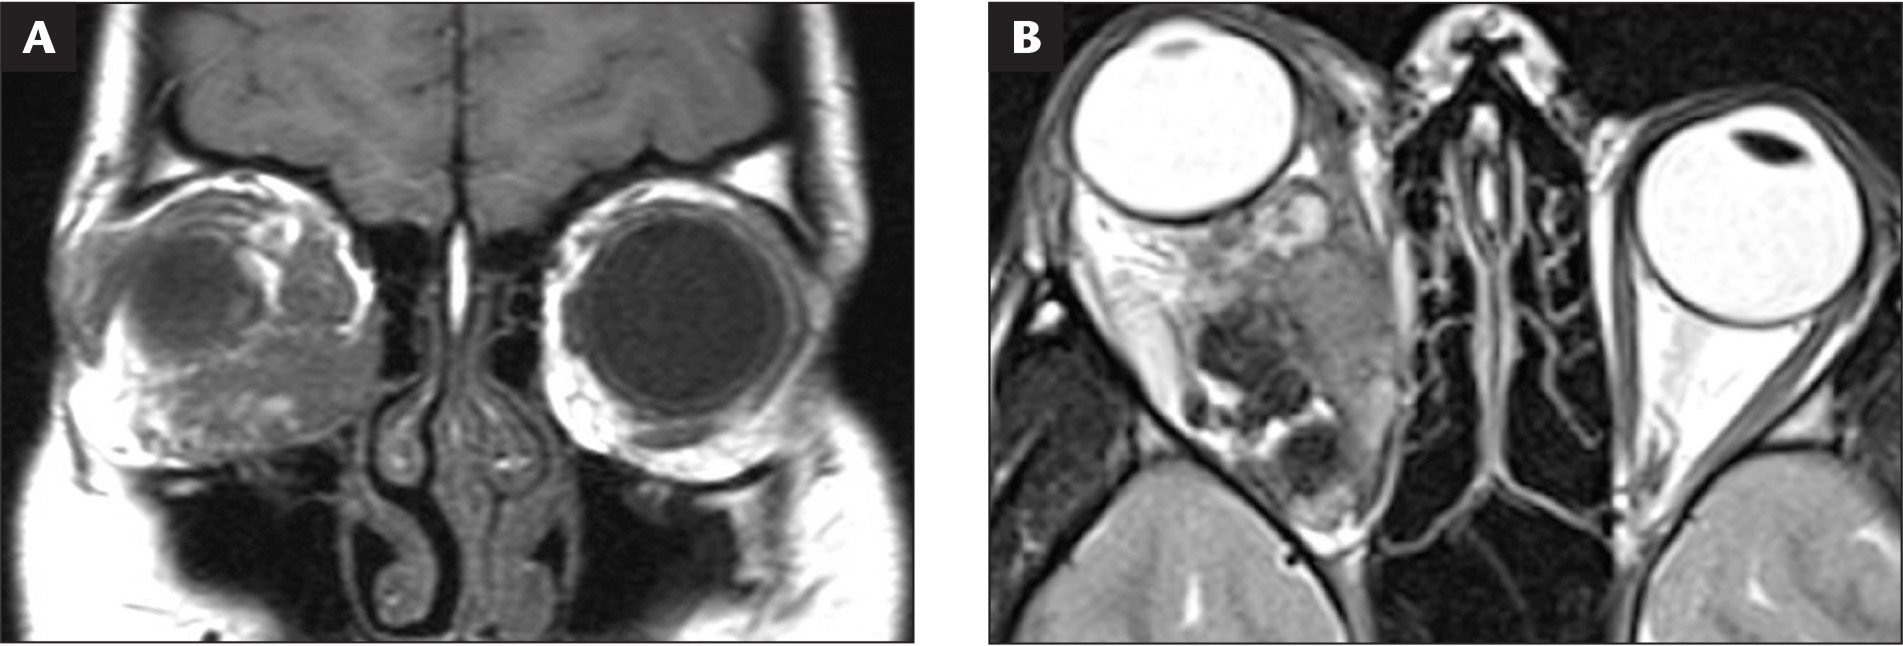 Magnetic resonance imaging studies at initial presentation. (A) T1-weighted coronal image demonstrates that the main bulk of the tumor is located in the inferior orbit with an unaffected supraorbital nerve. (B) T2-weighted axial frame reveals heterogenous signal intensity probably corresponding to heterologous tissue elements within the tumor.